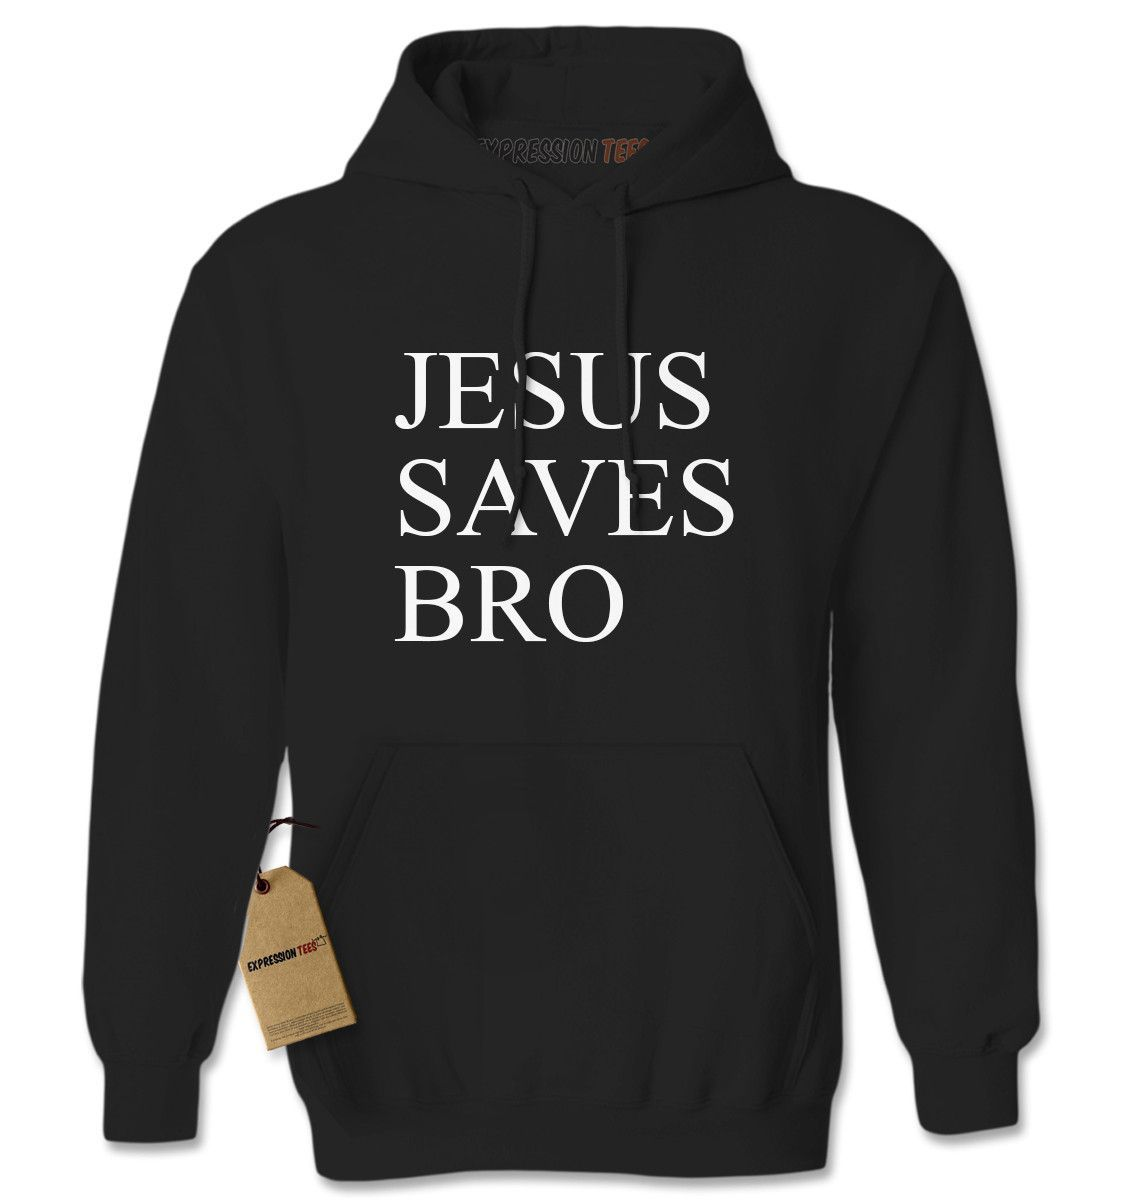 Jesus Saves Bro Adult Hoodie Sweatshirt